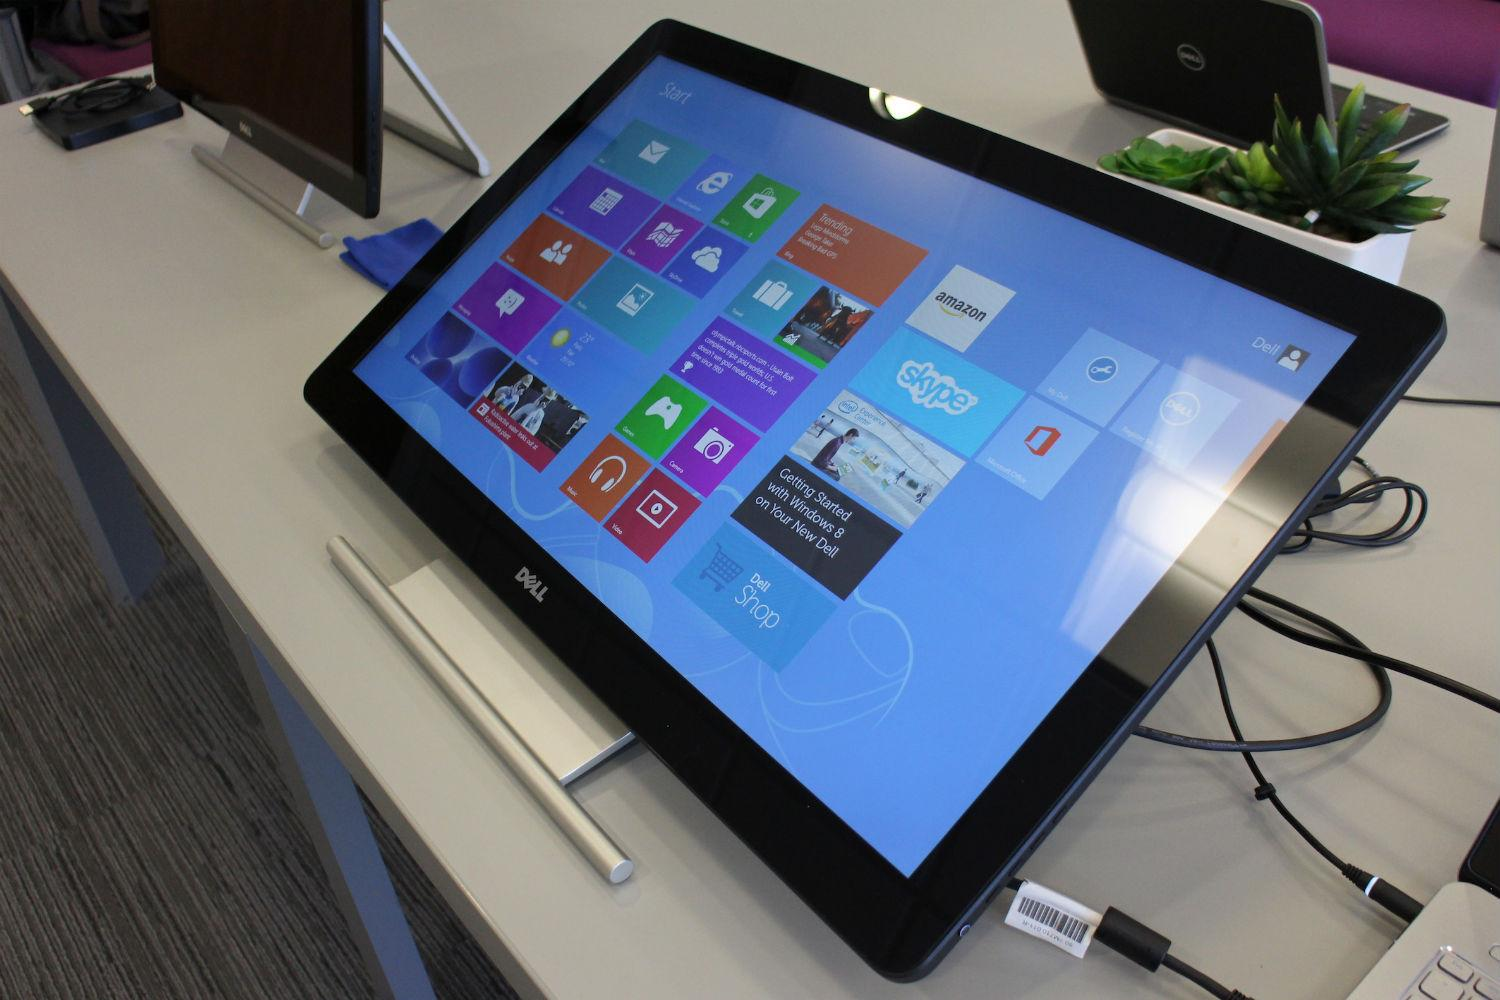 Dell Announces Flexible New Windows 8 Touchscreen Monitors